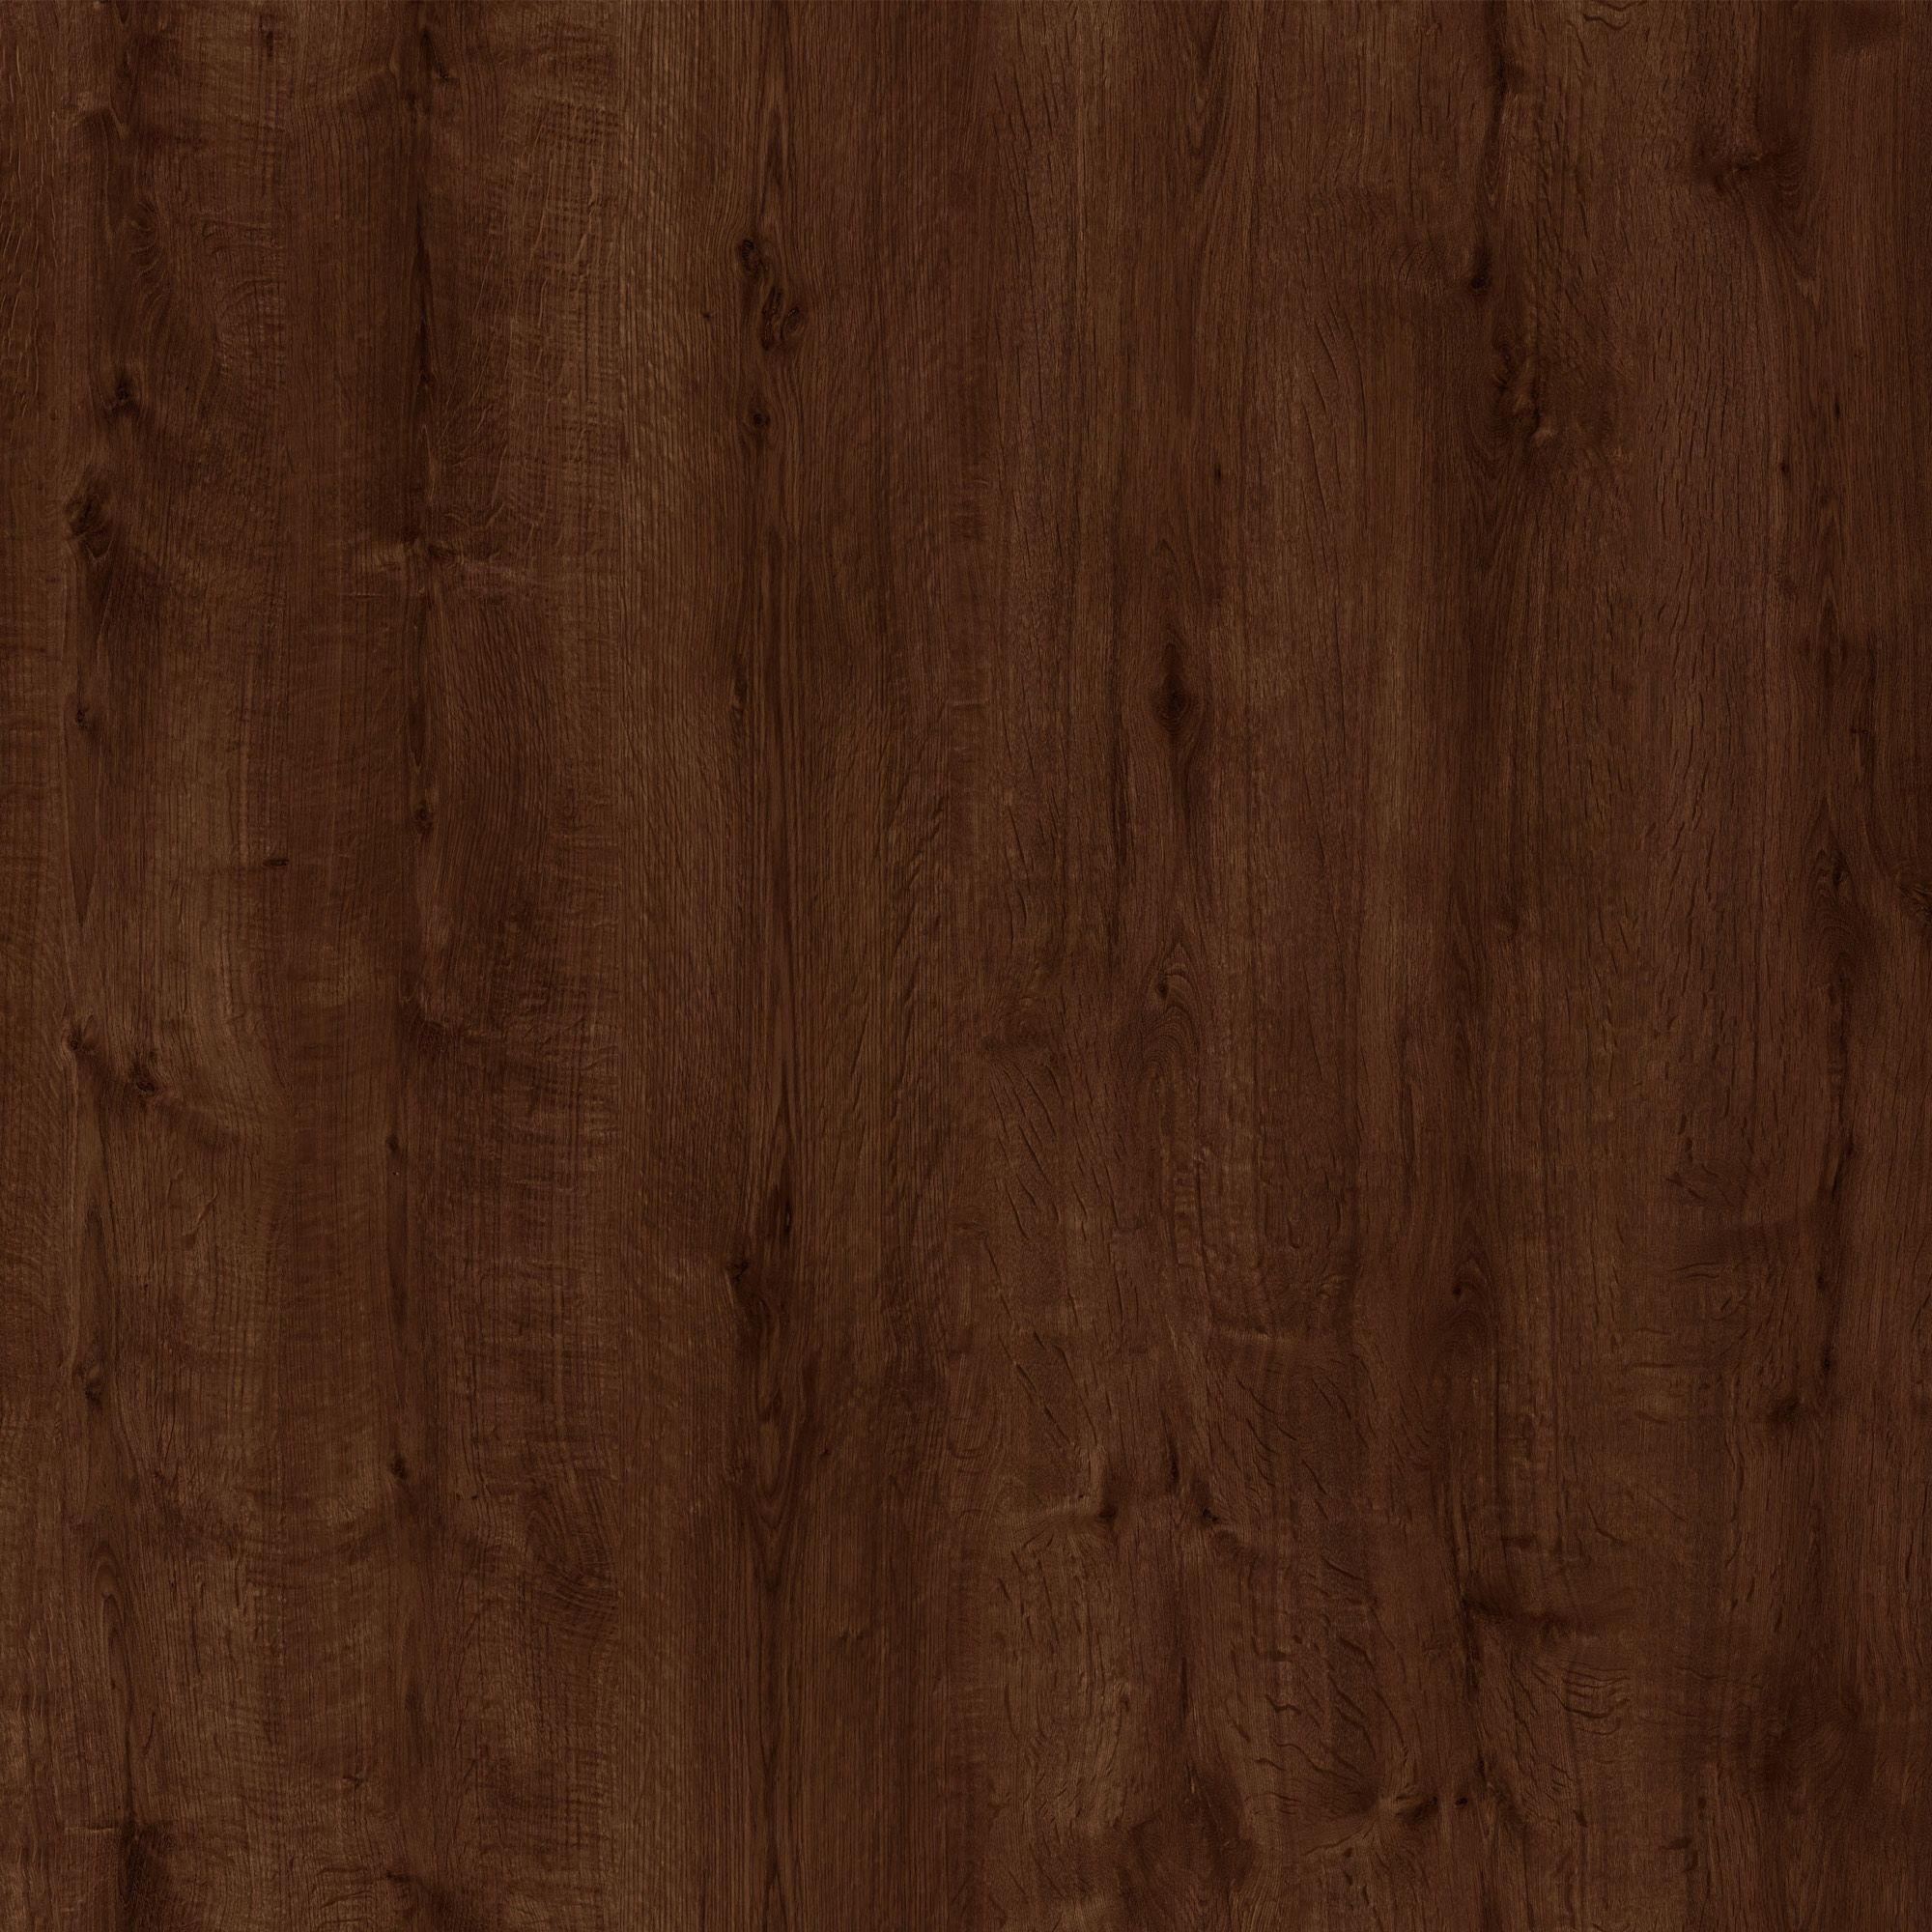 Dark Wood Laminate ~ Concertino natural prestige dark oak effect laminate